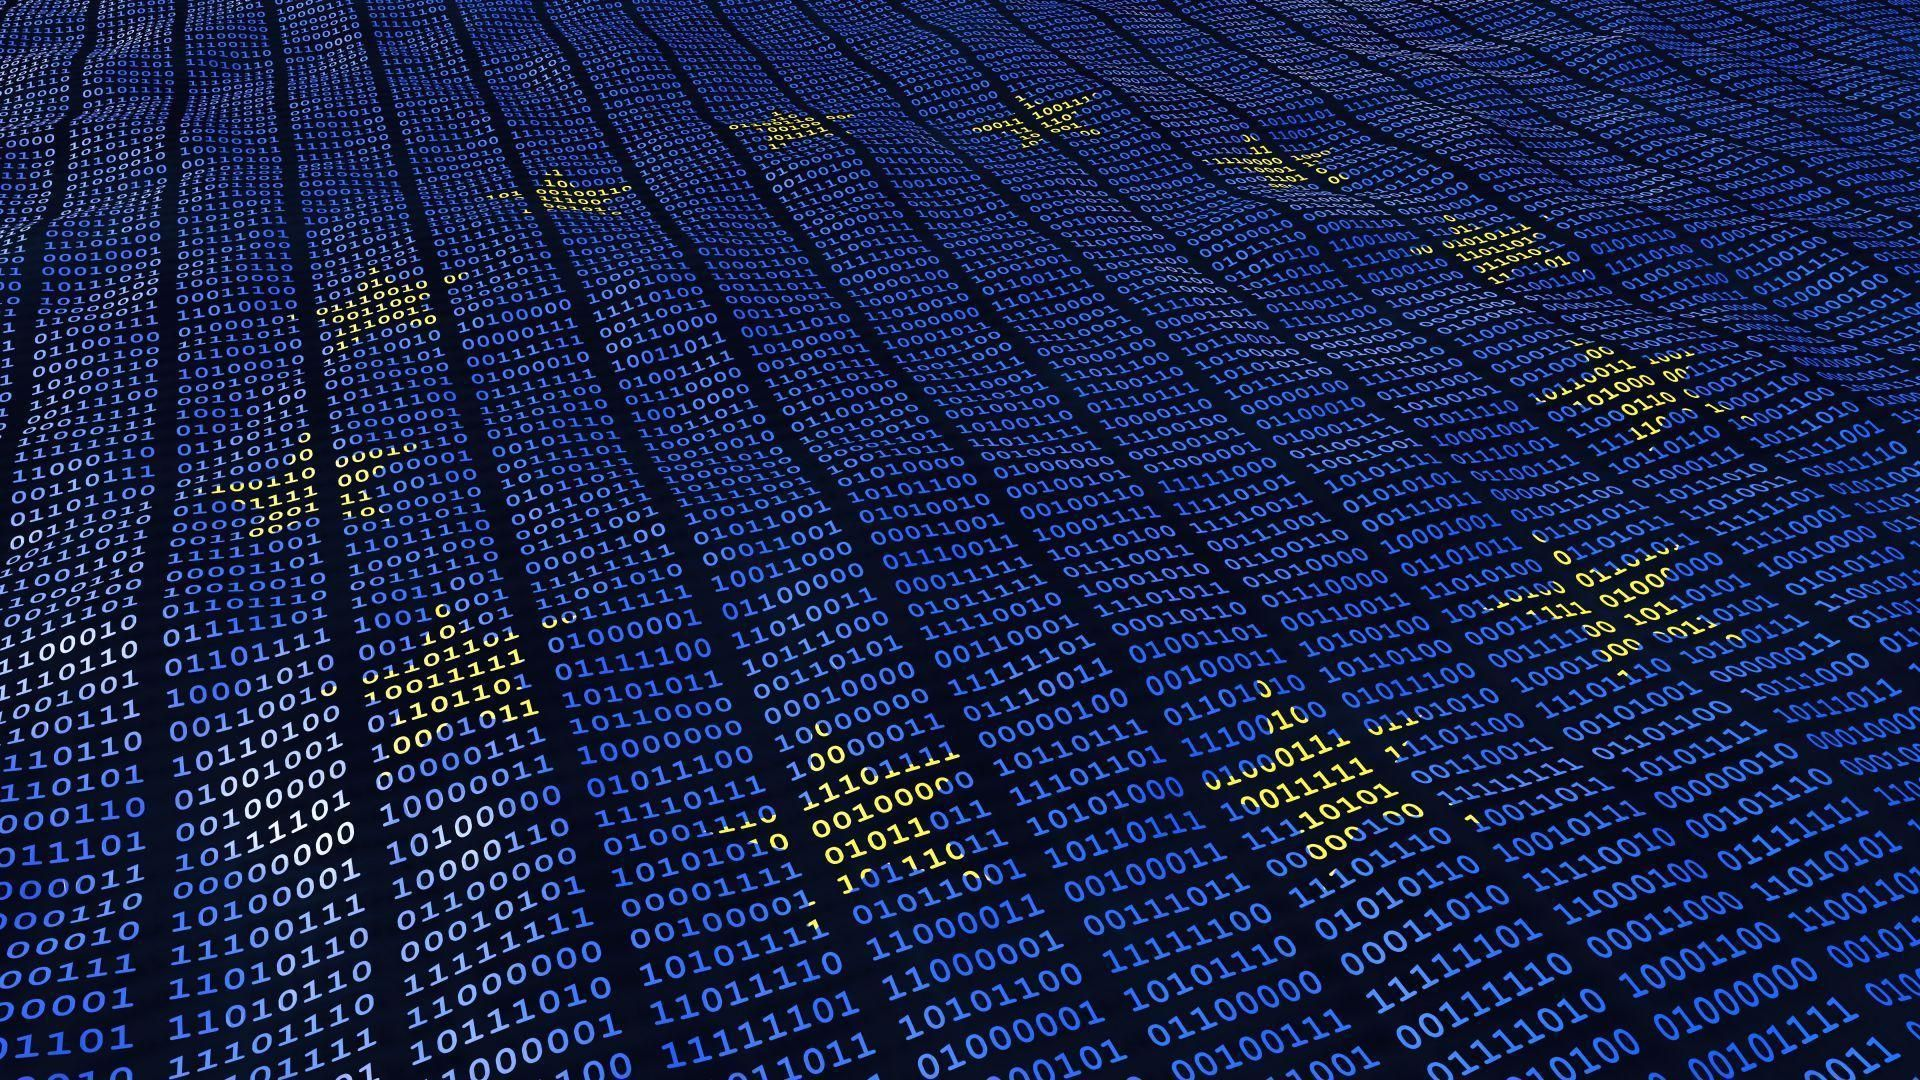 New Call 'Secure Societies in Horizon 2020' by EU